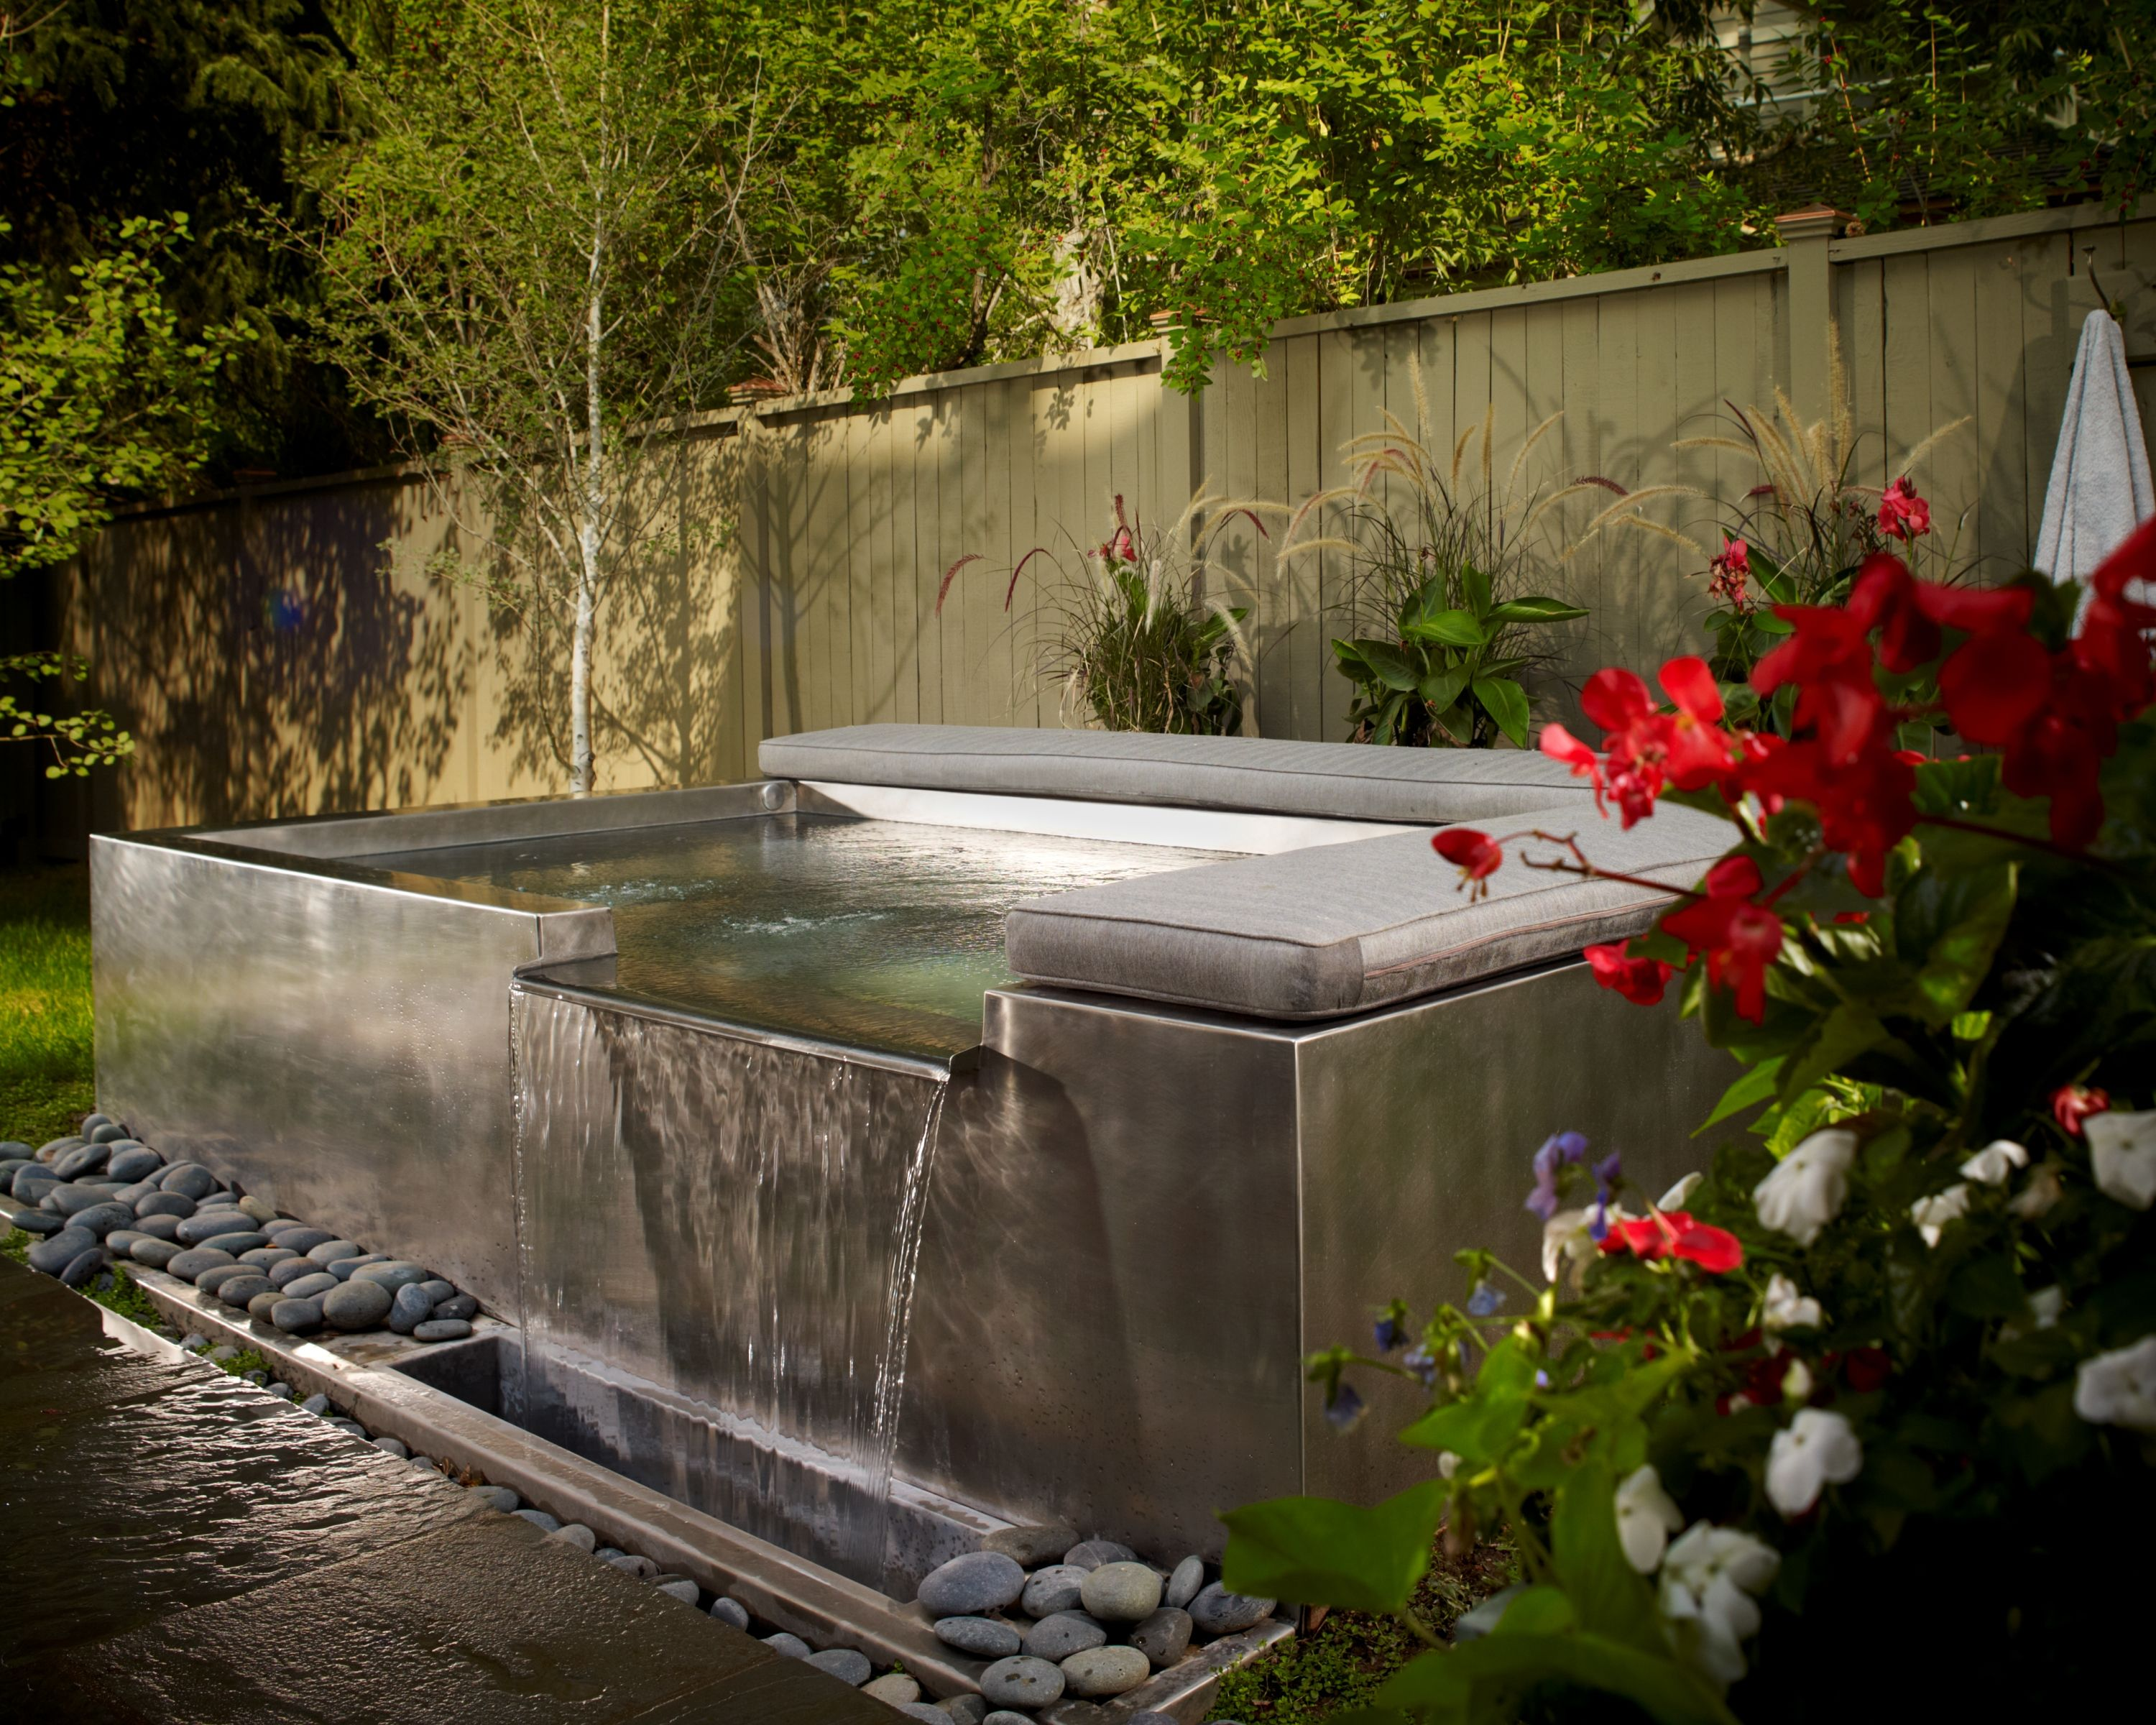 stainless steel spa by diamond spas outdoor living pinterest